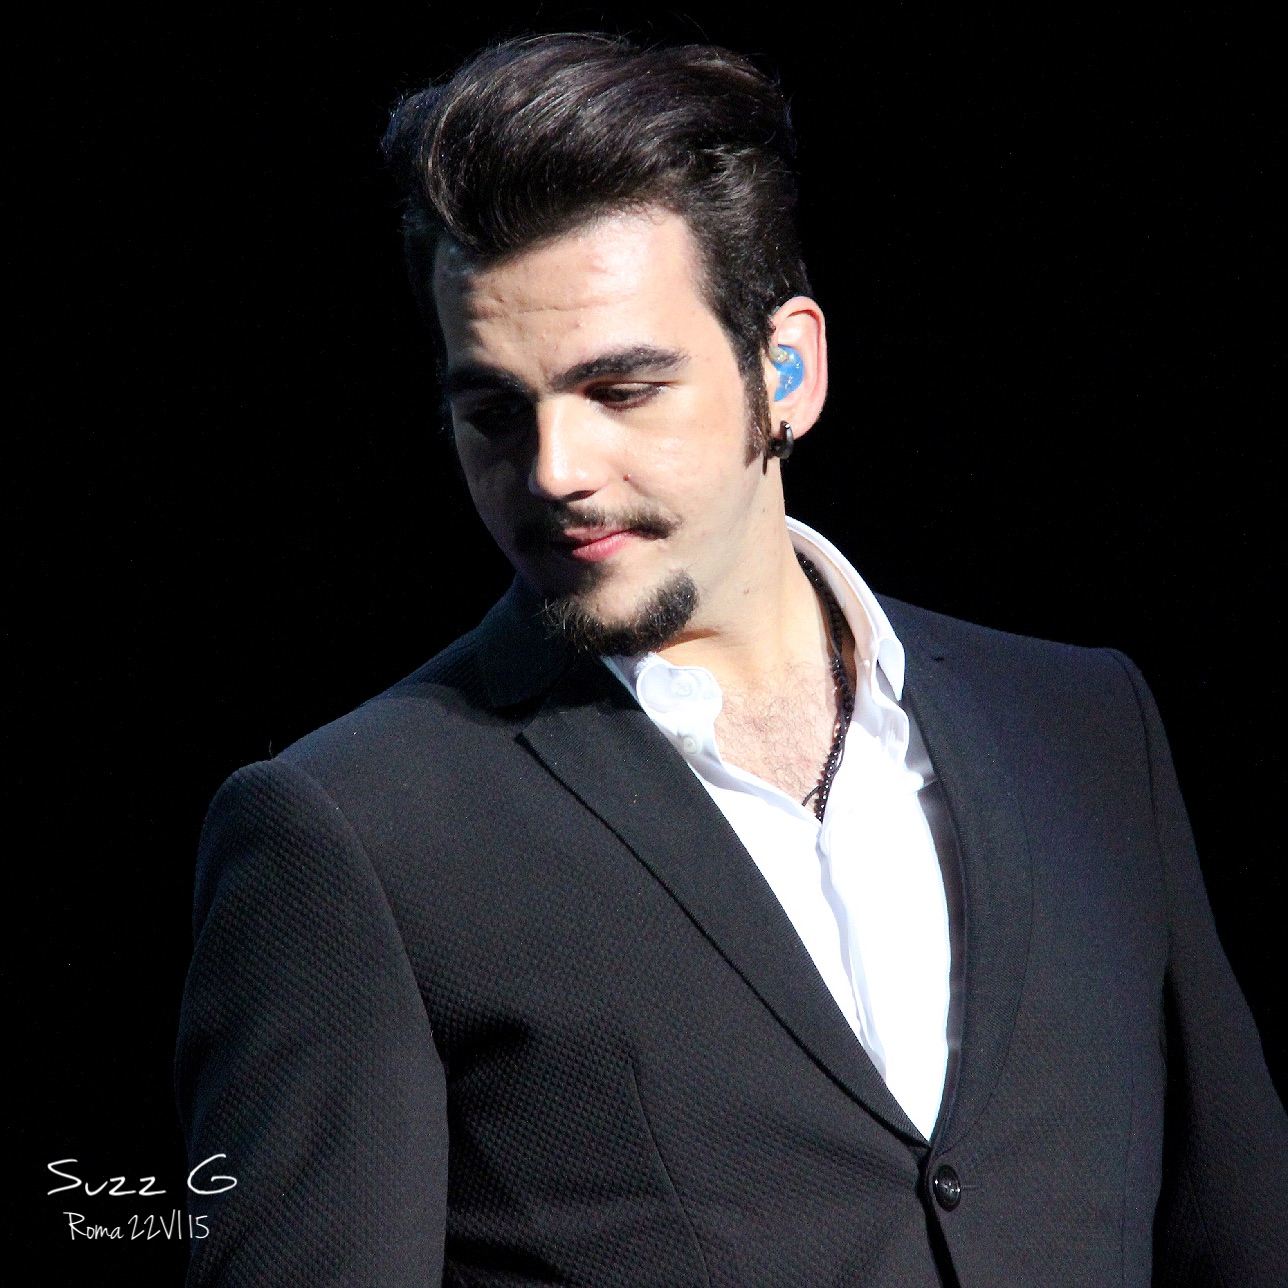 Ignazio Boschetto earned a  million dollar salary, leaving the net worth at 2.8 million in 2017